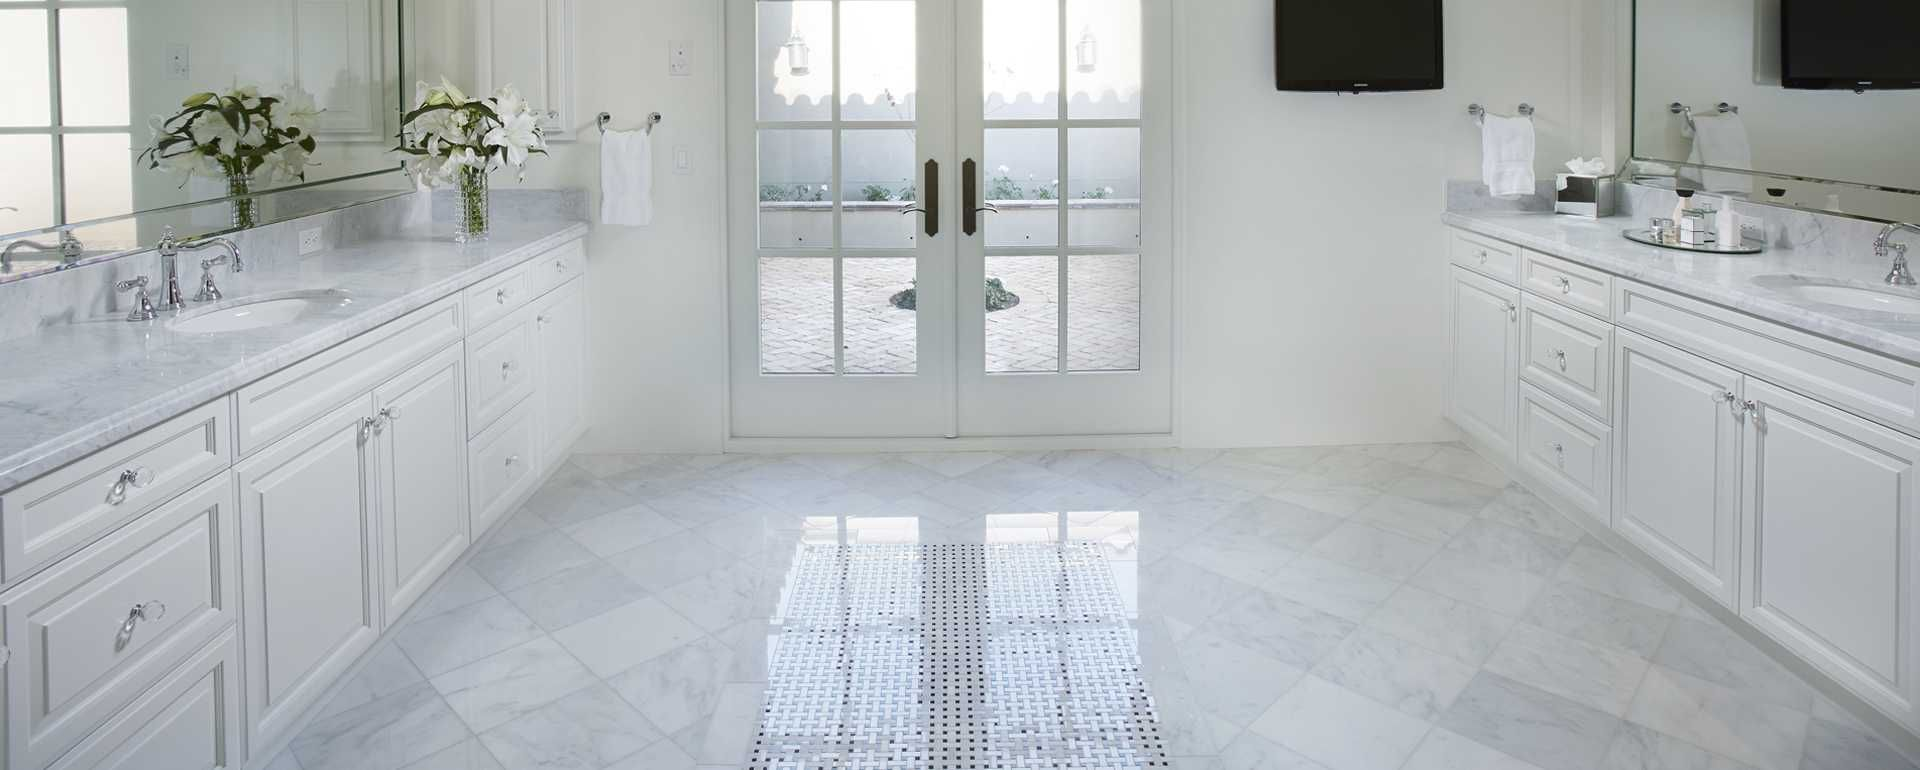 Check Out 15 Different Types of Flooring Explained in